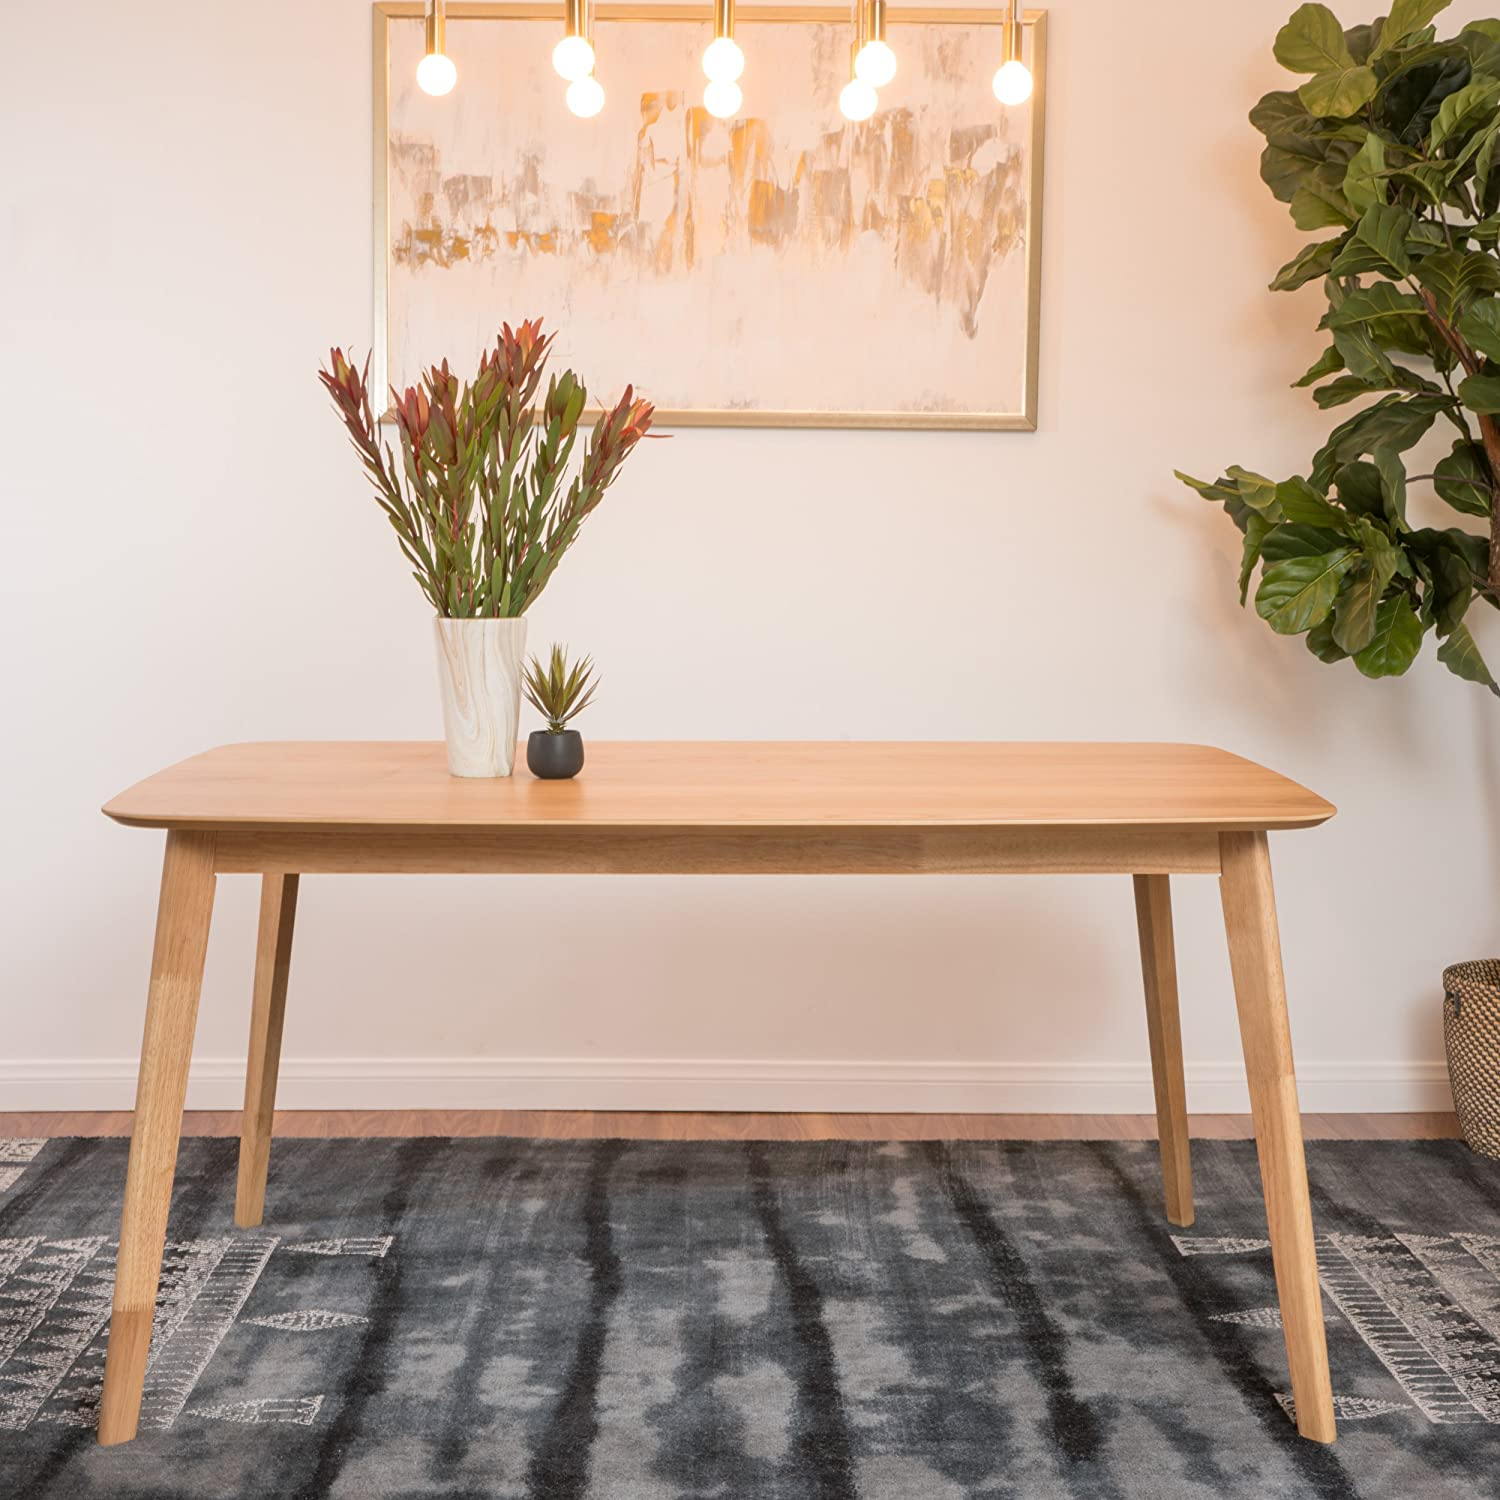 Anne Natural Oak Finish Wood Dining Table